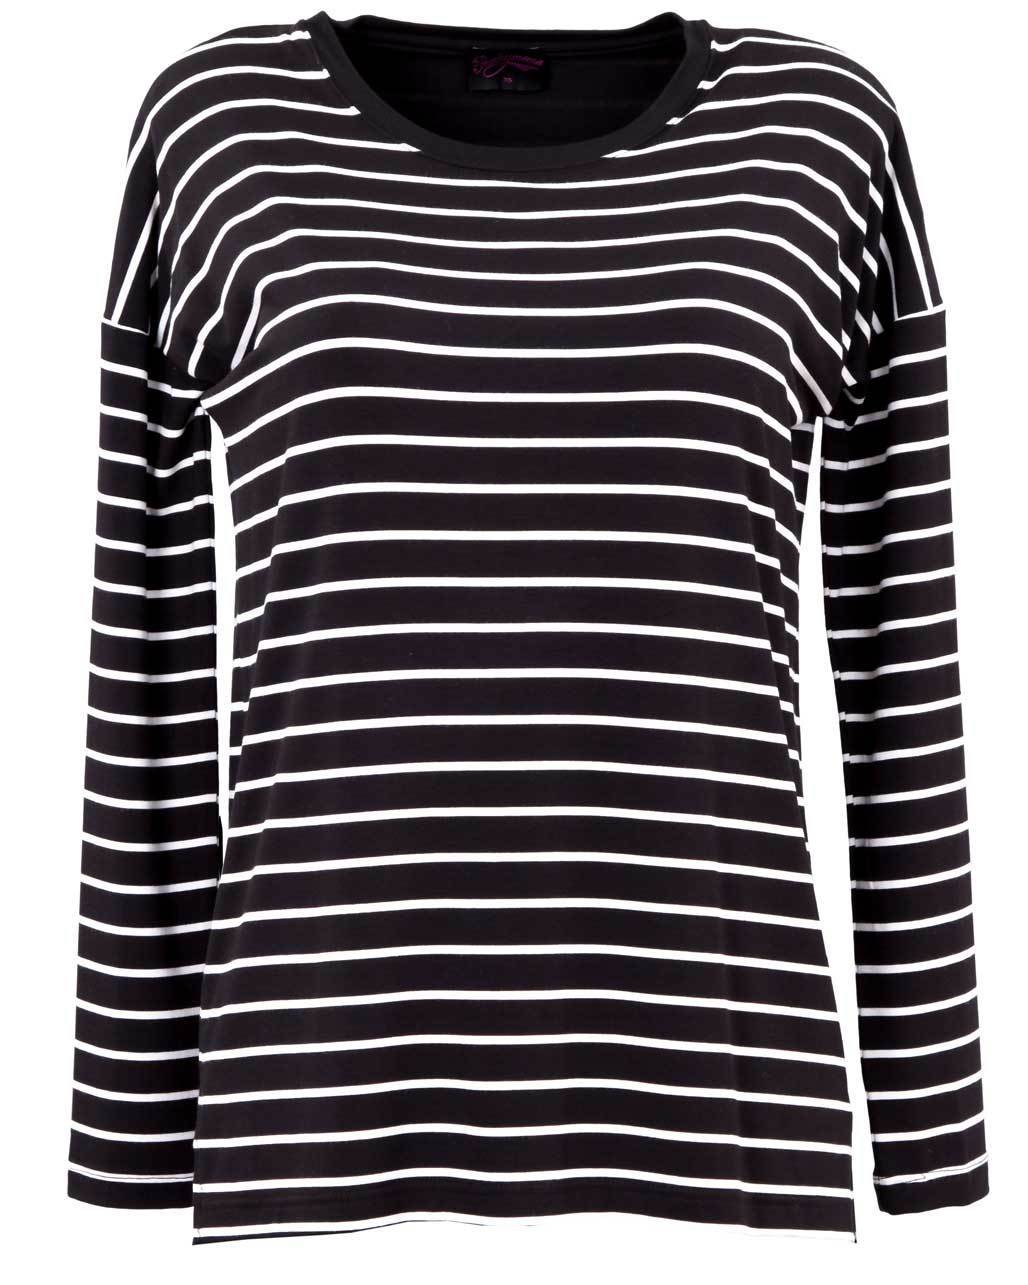 Black and white striped long sleeve Australian nursing top - Front View